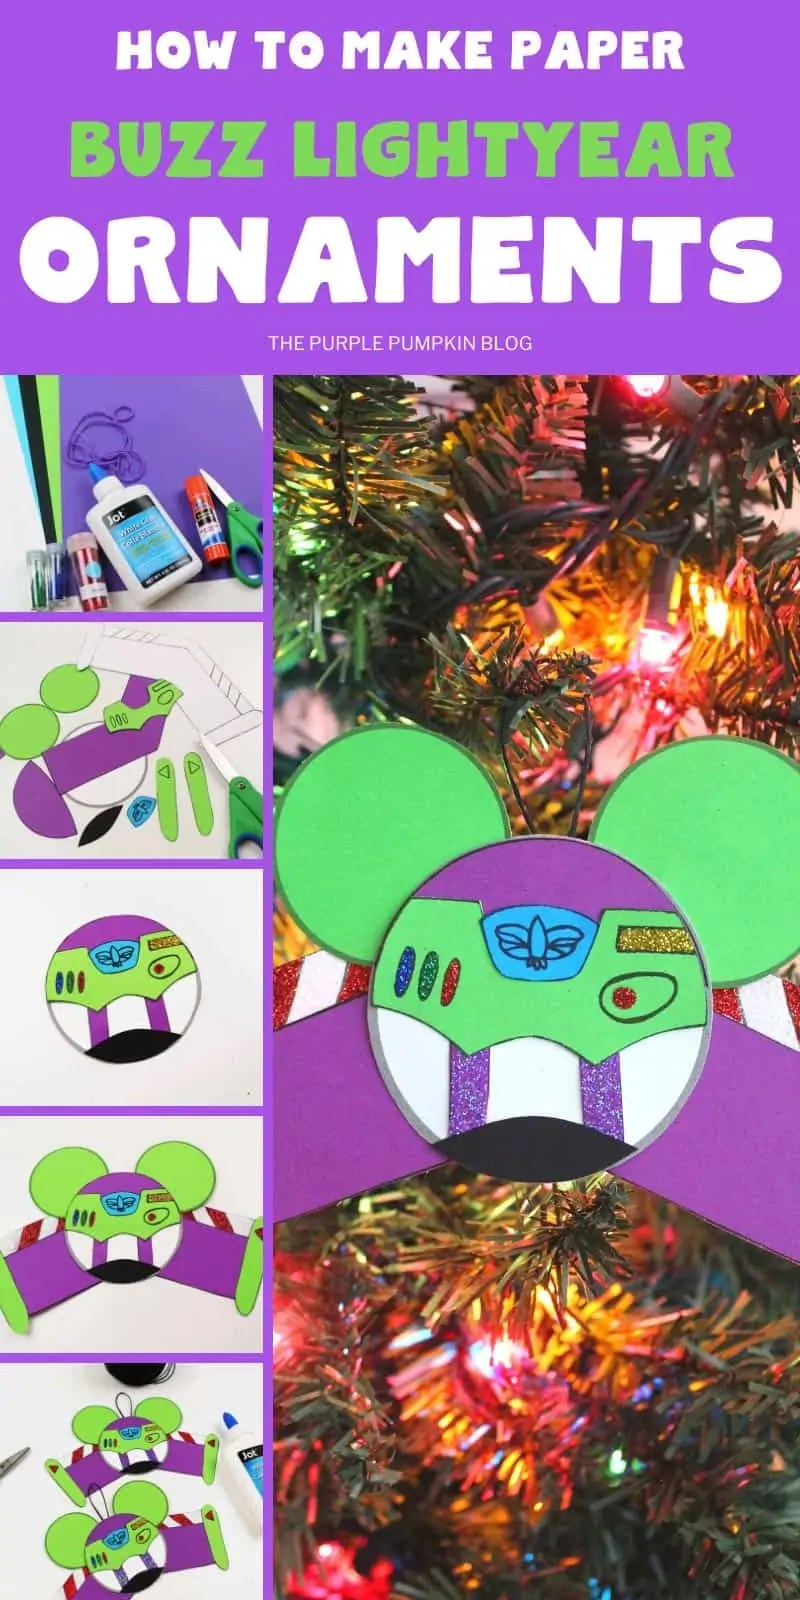 how to make Buzz Lightyear ornaments